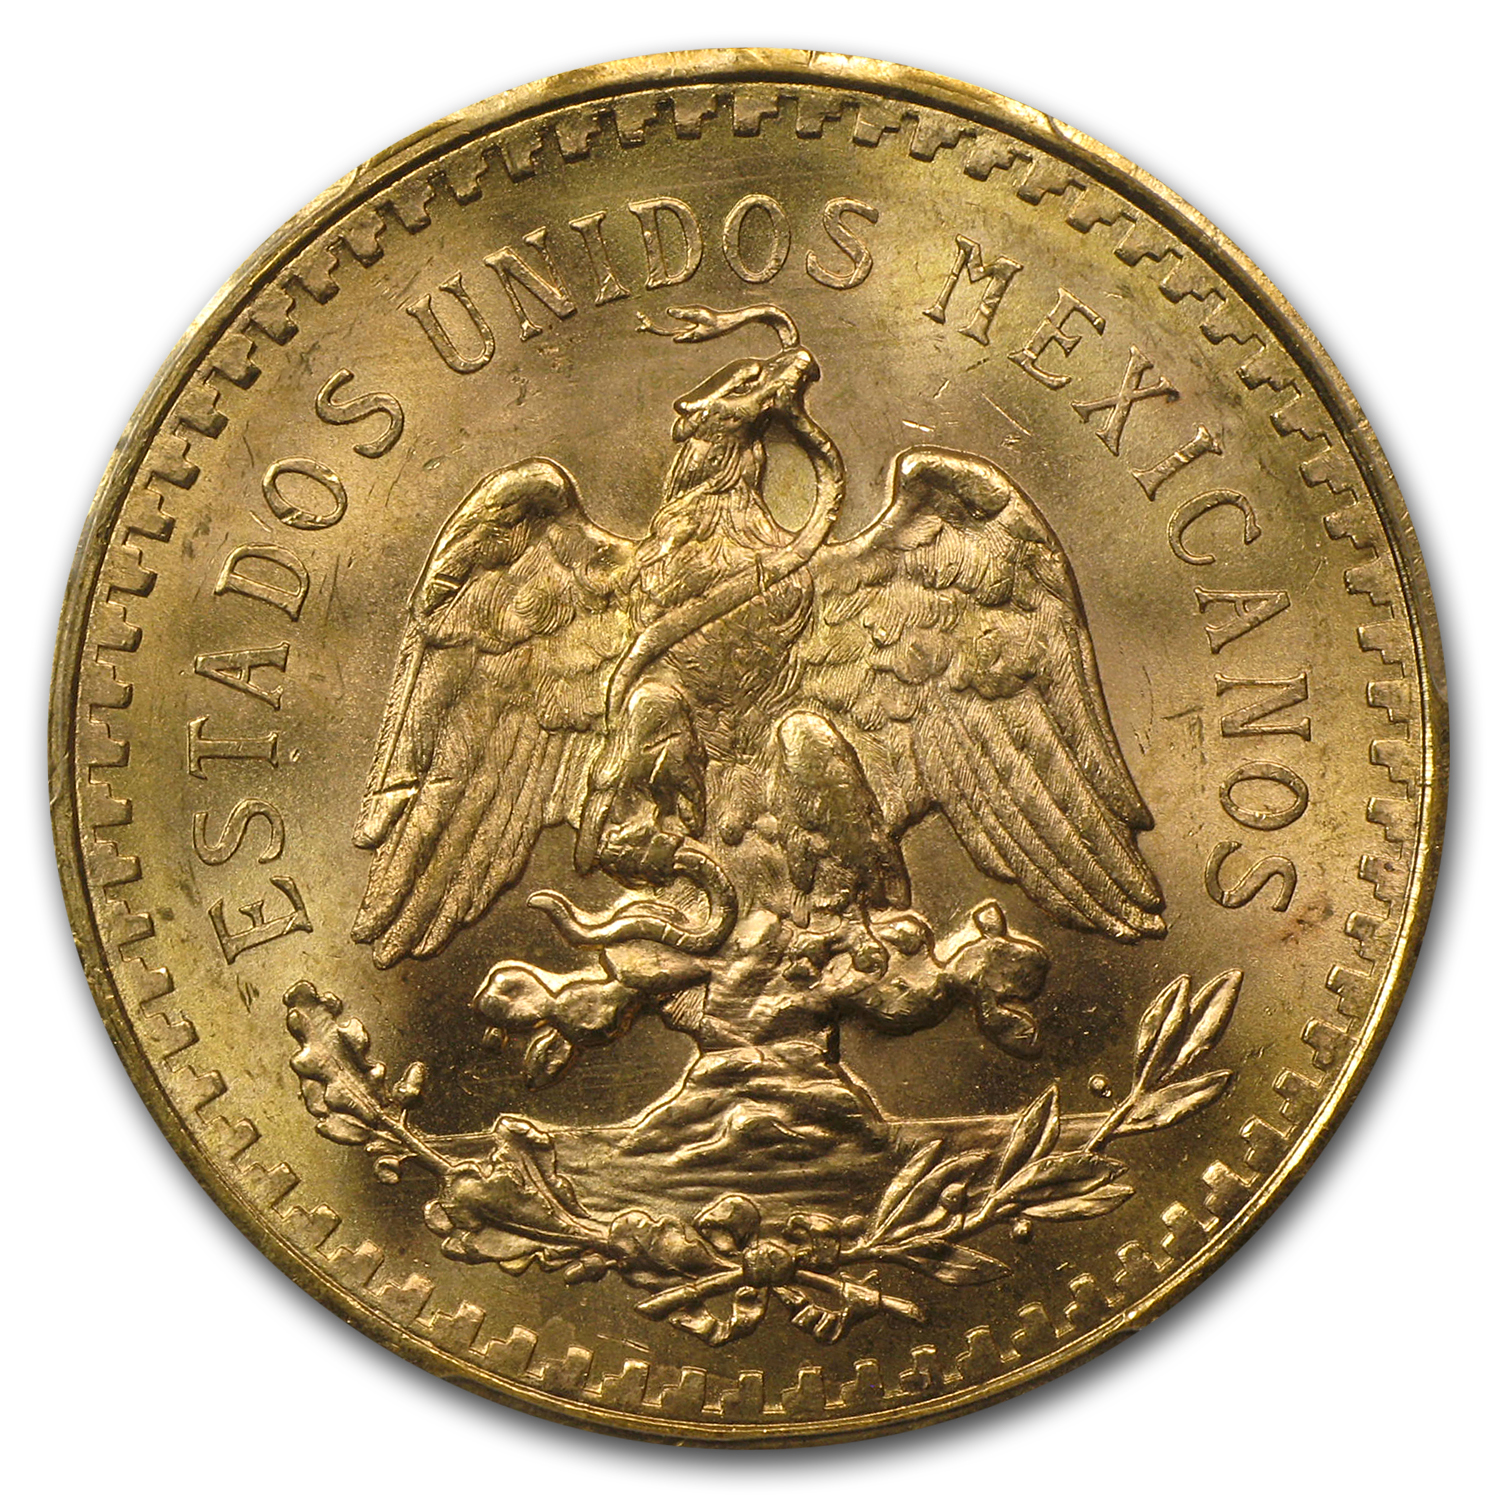 Mexico 1944 50 Pesos Gold Coin - MS-66 PCGS - Finest Known!